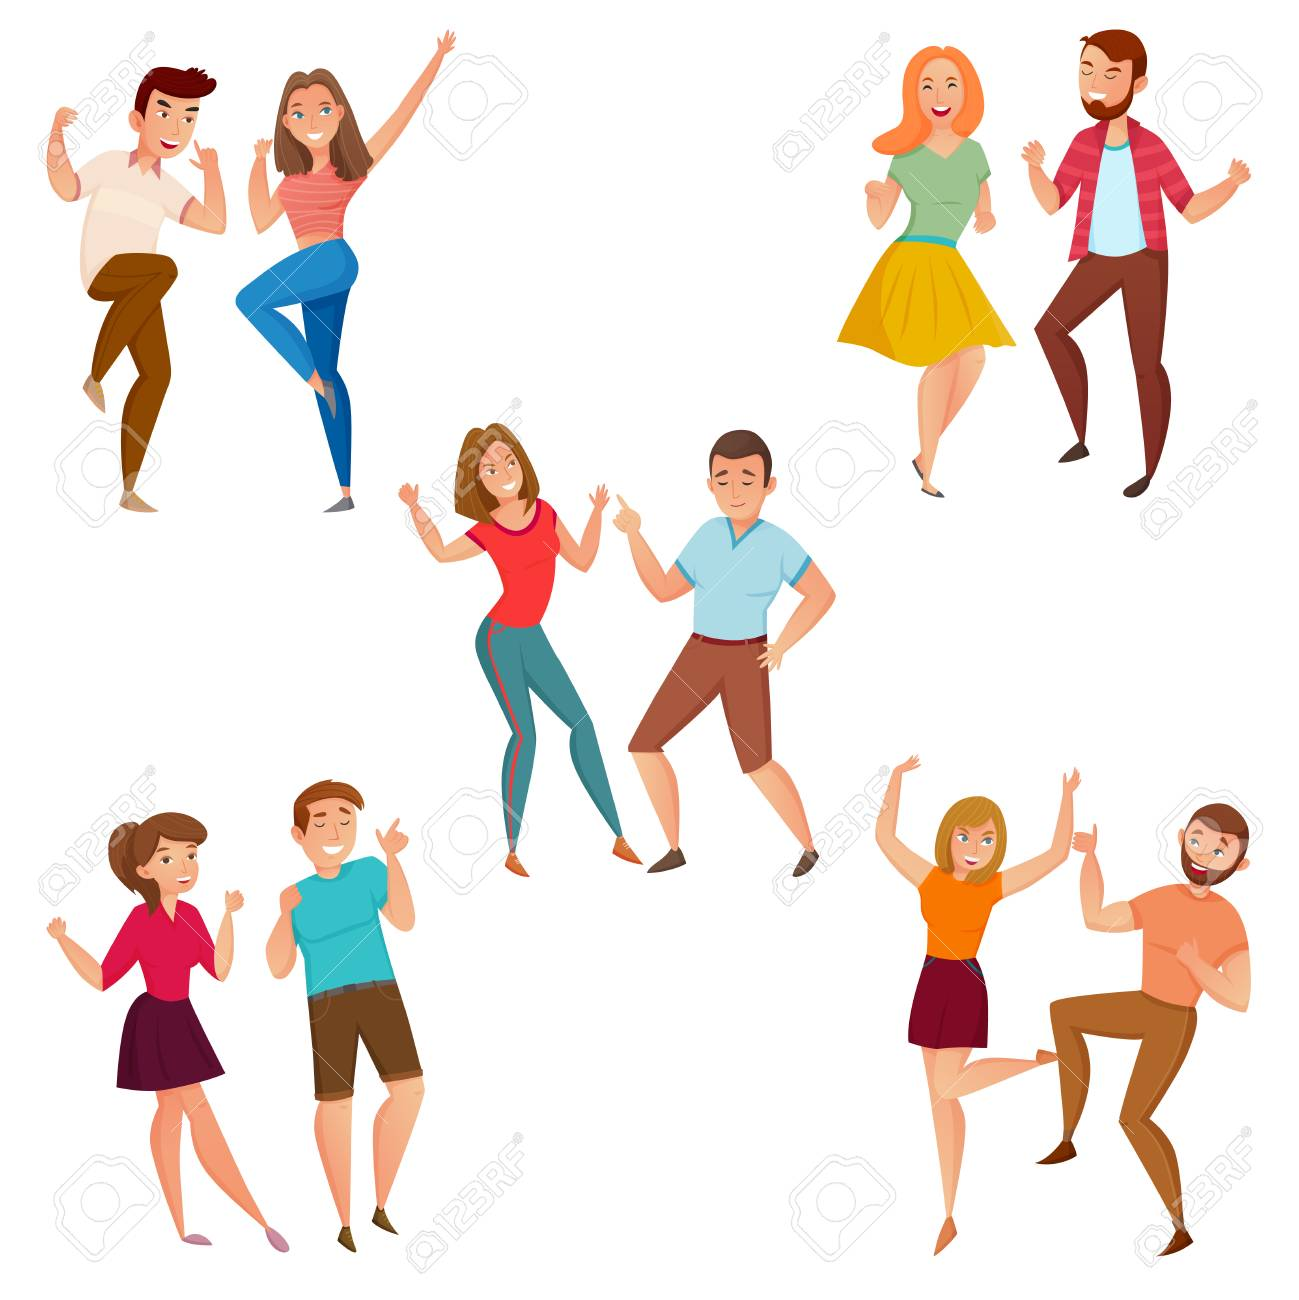 dancing people 5 young couples party and street style moves cartoon rh 123rf com Drawings of Cartoon People Dancing Animated Cartoon People Dancing